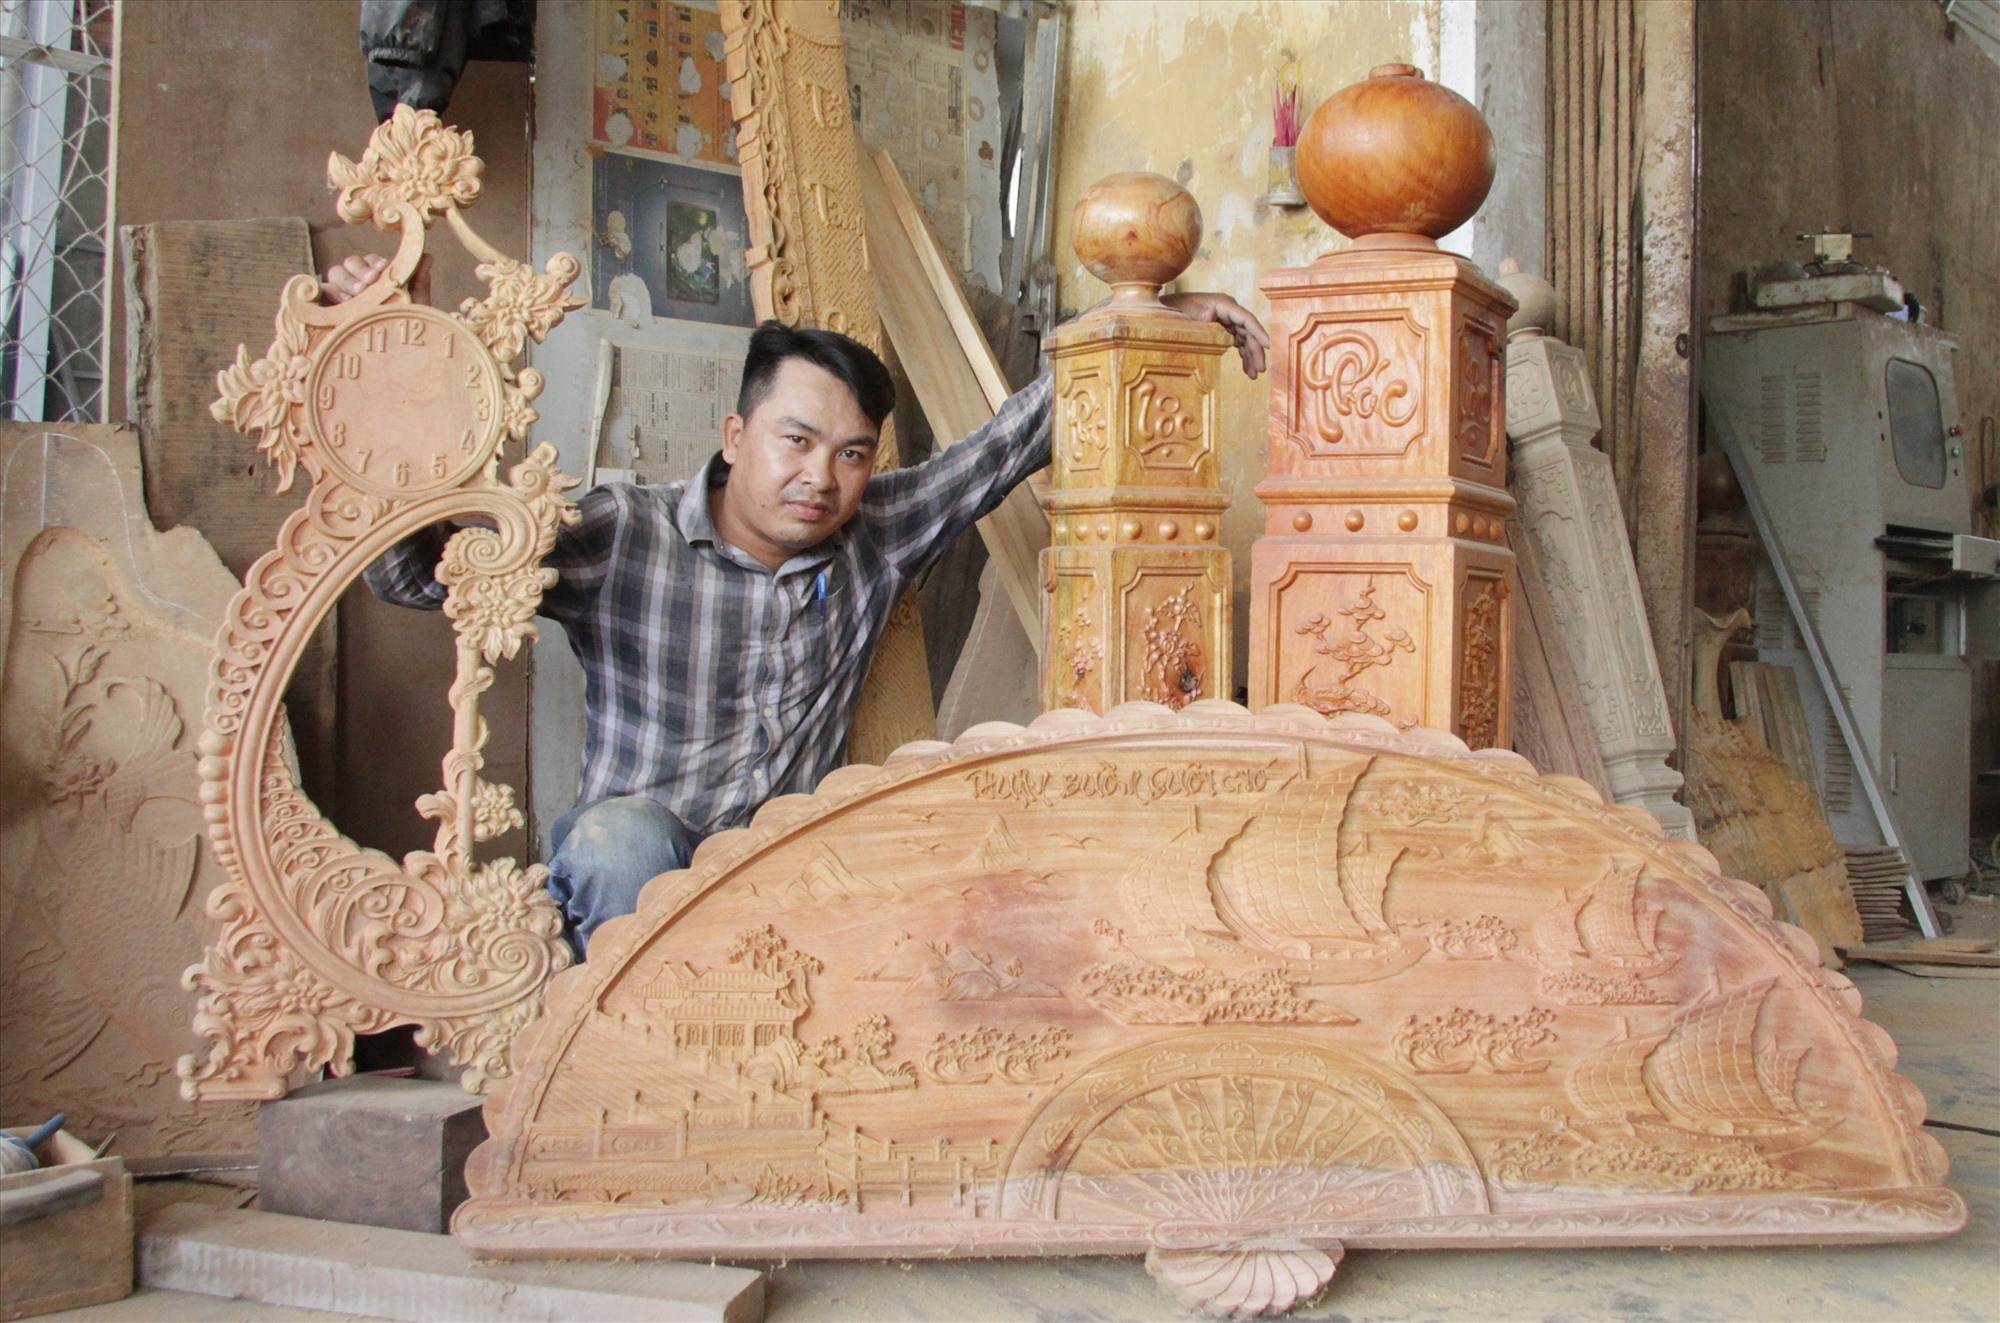 Ho Van Cong and his products